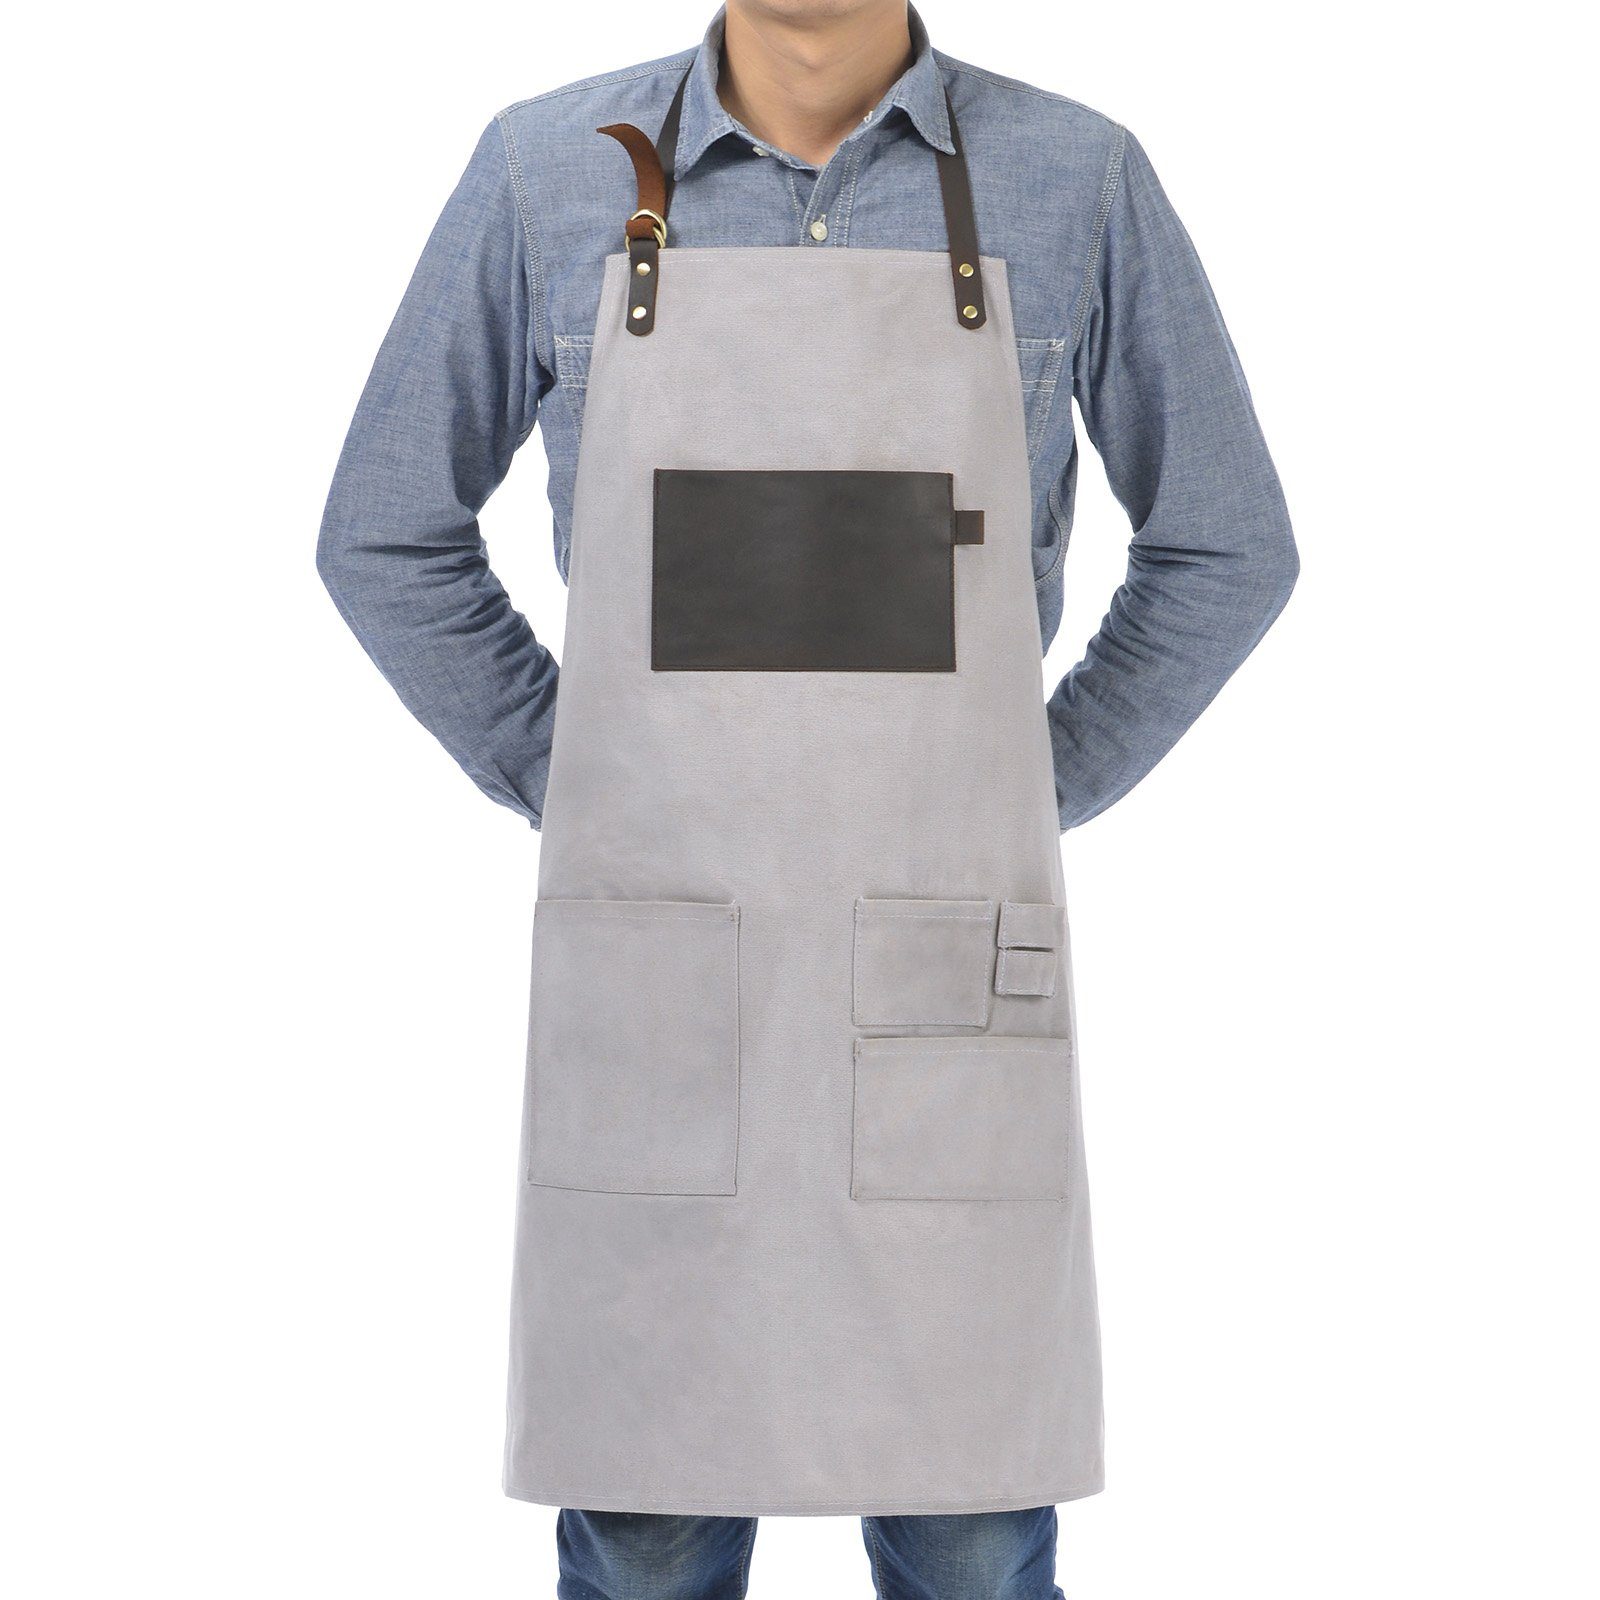 VEEYOO Heavy Duty Waxed Canvas Utility Apron with Pockets, Adjustable Shop Work Tool Welding Apron for Men and Women, Light Gray, 27x34 inches by VEEYOO